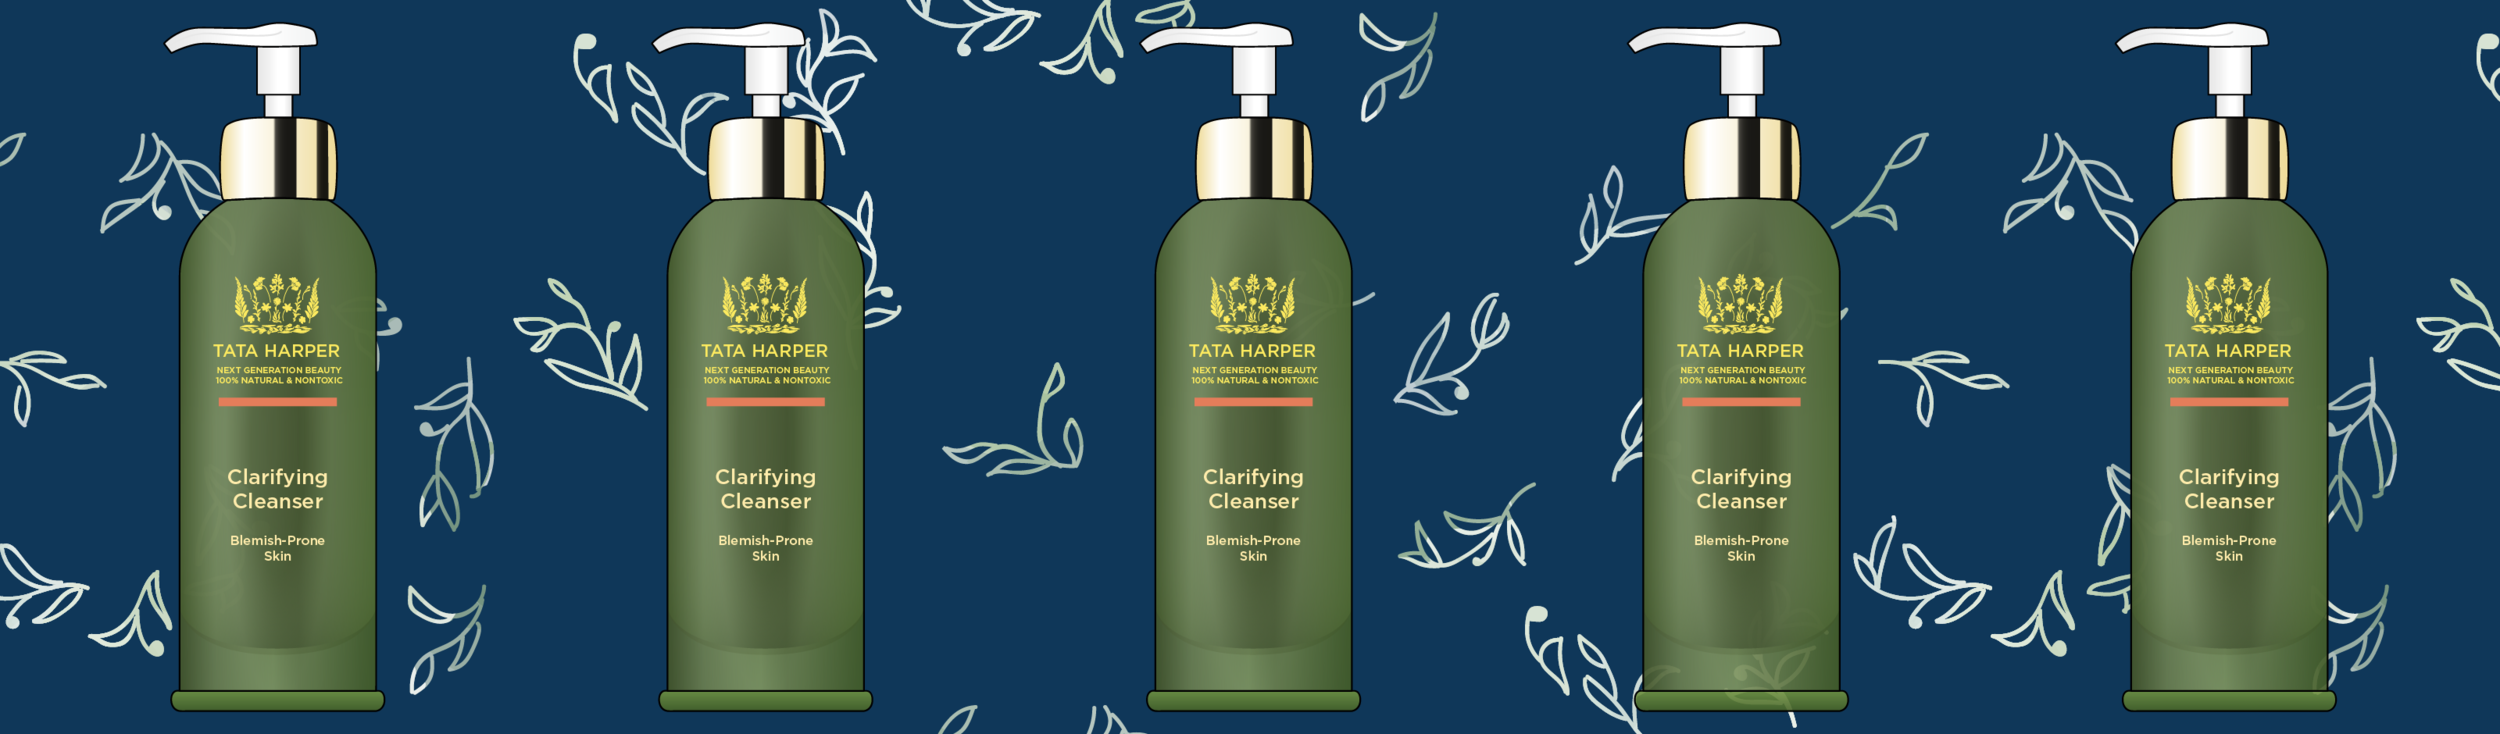 Clarifying Cleanser by tata harper #22